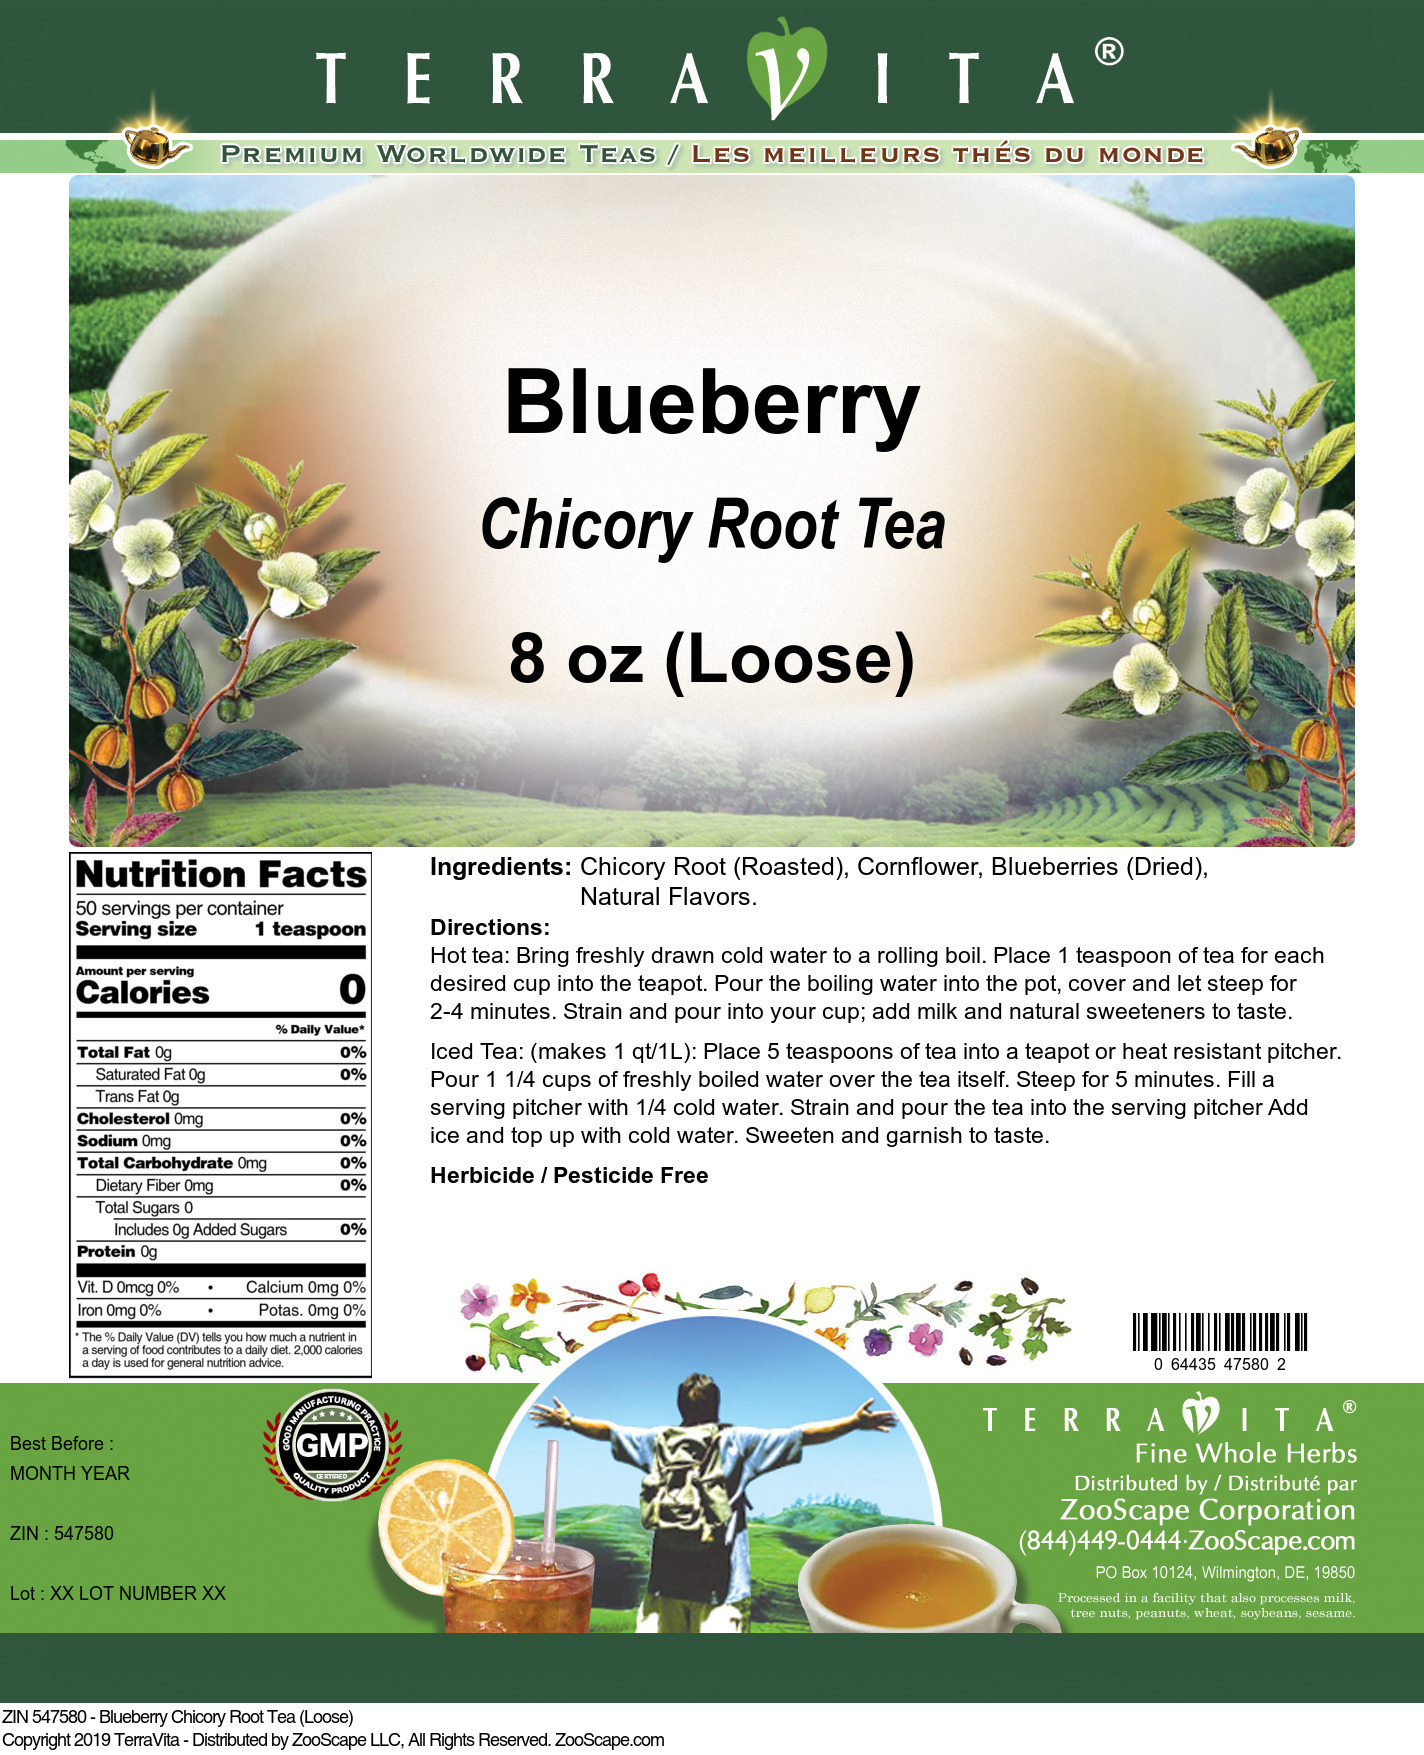 Blueberry Chicory Root Tea (Loose)